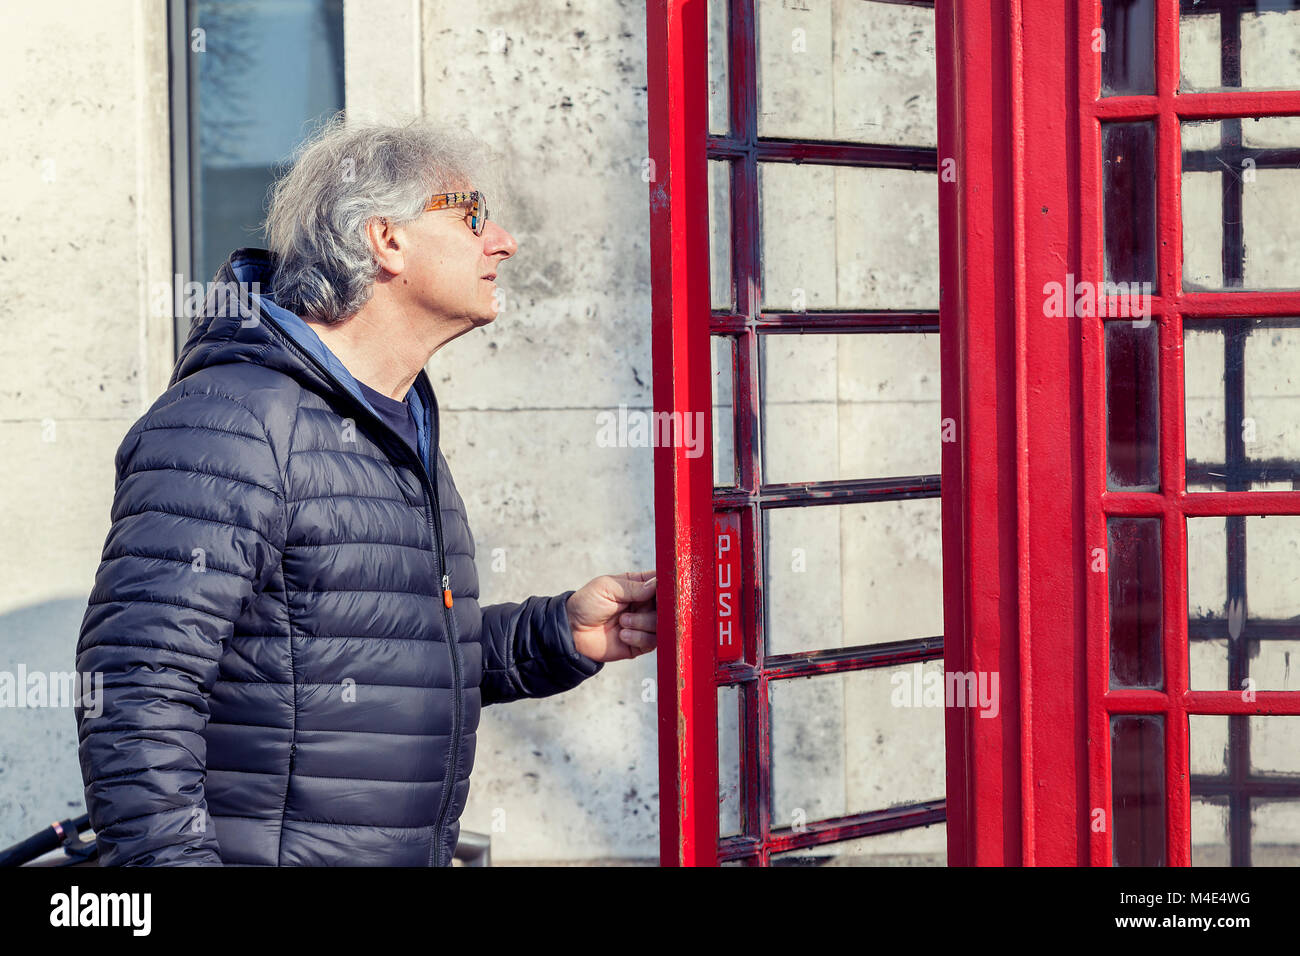 Mature man walks into a red telephone box in london stock photo mature man walks into a red telephone box in london planetlyrics Choice Image